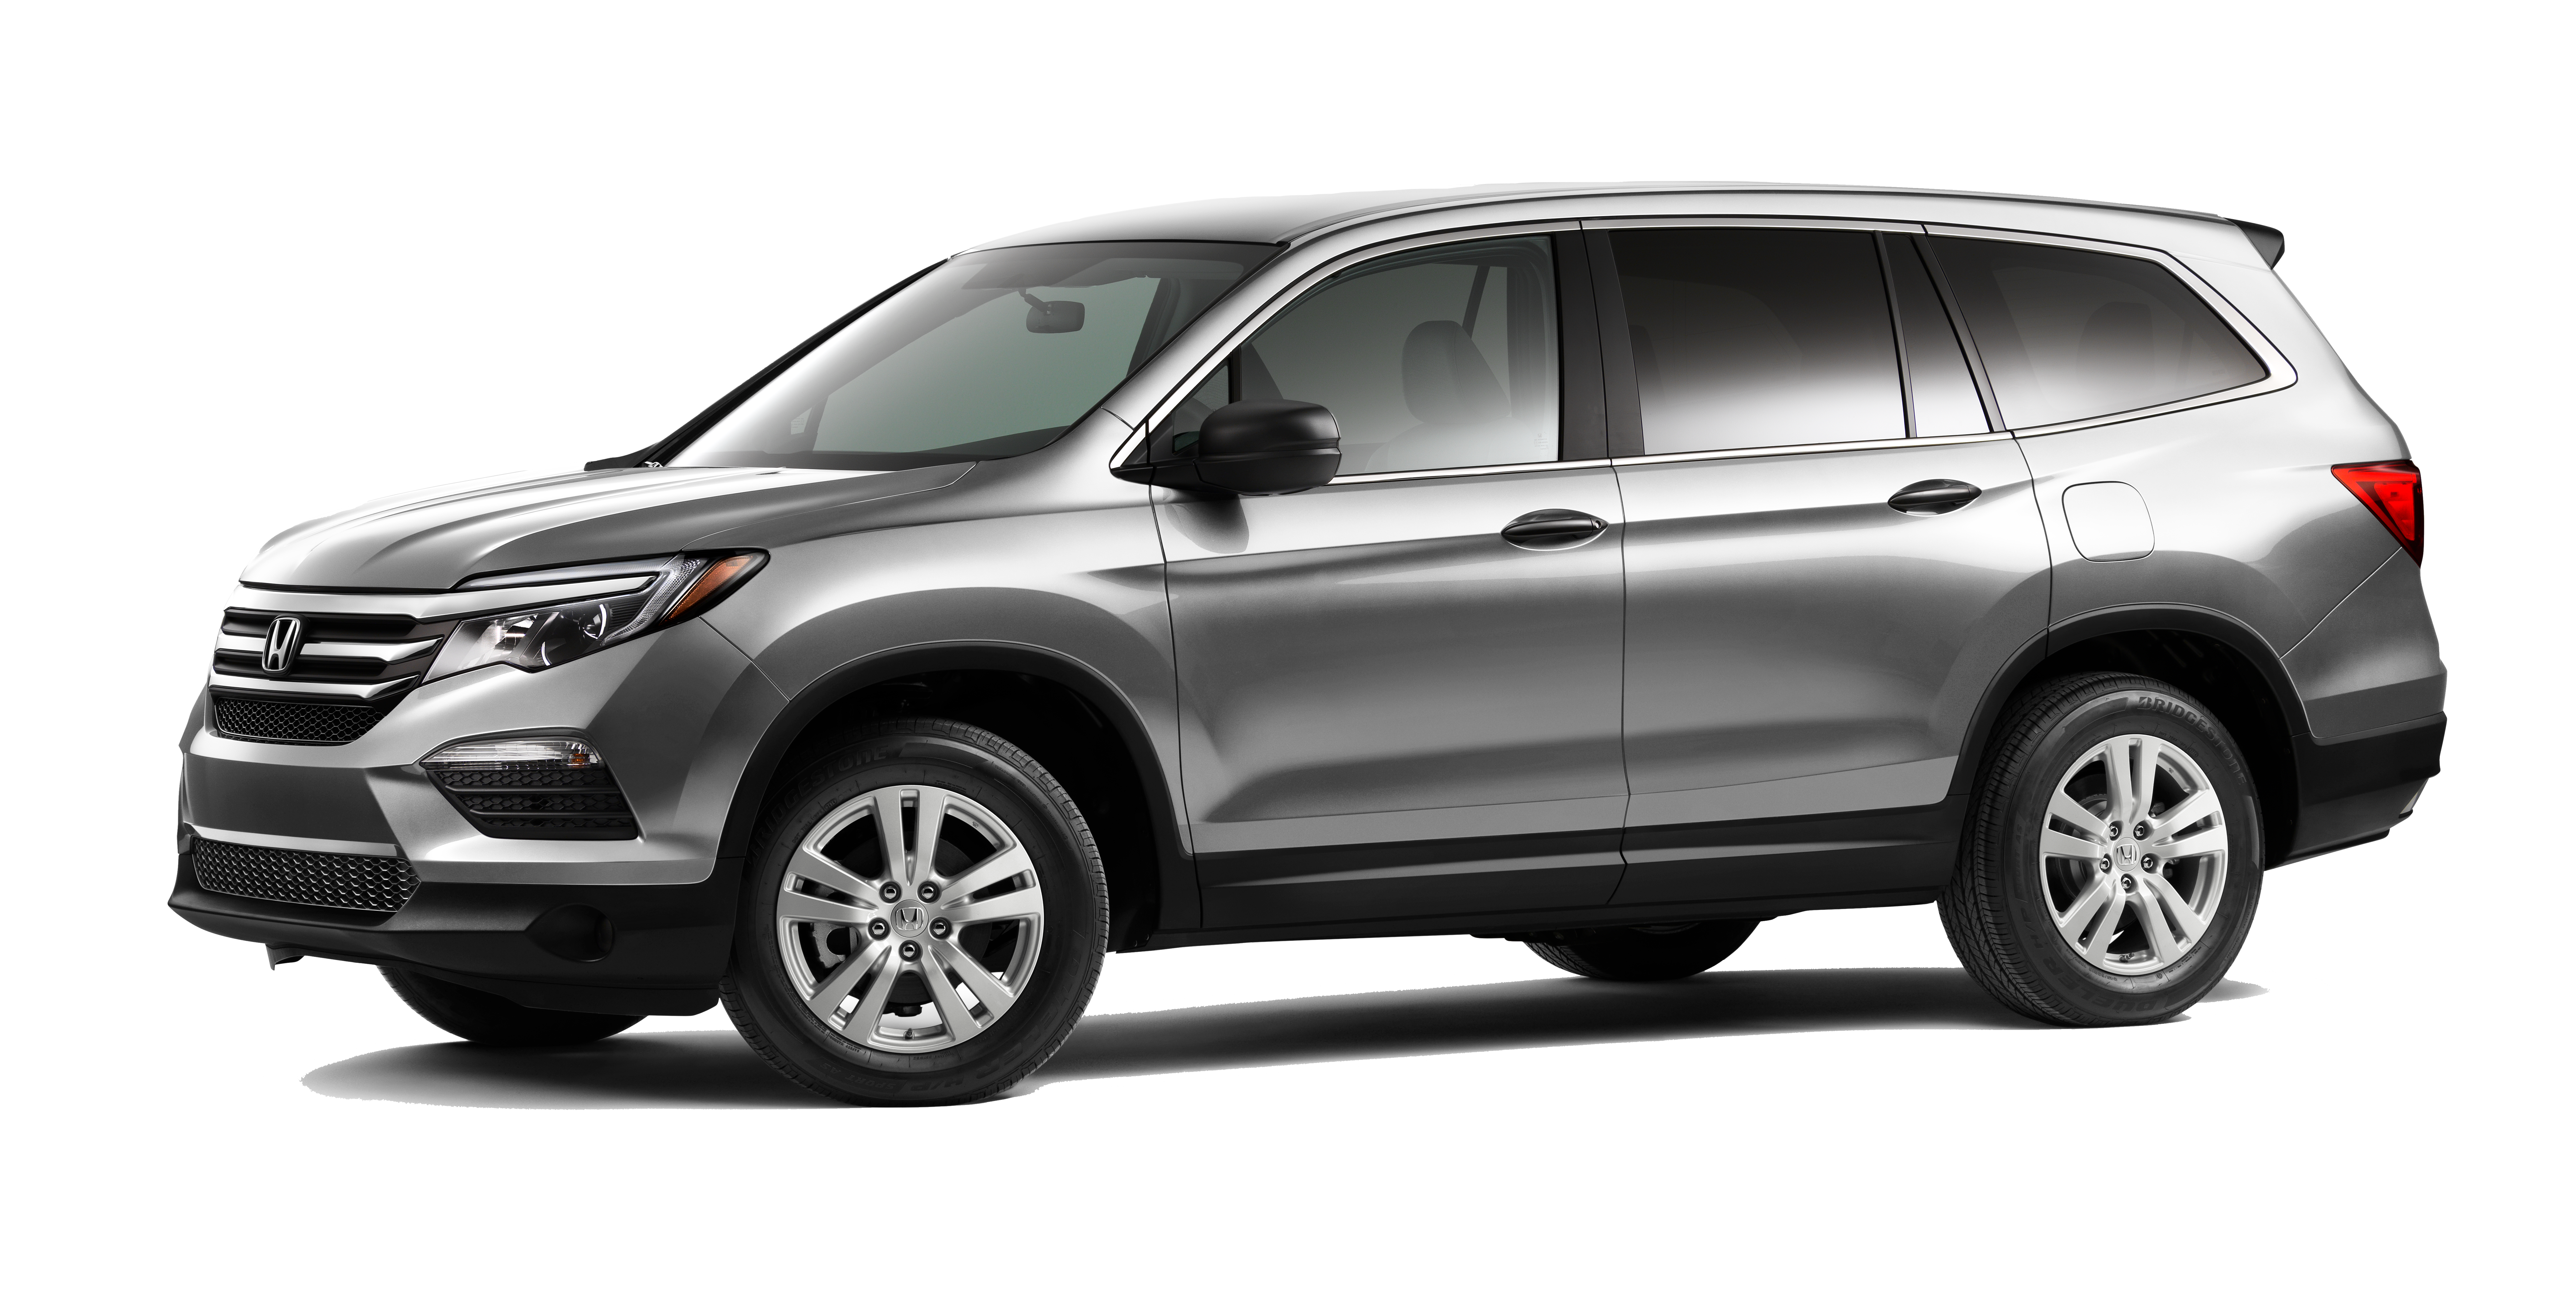 honda getaway to fl brickell night spur drive moment pilot silver detour day that quick brochure vehicle weekend favorite satisfy the trip on your miami of or town defined a